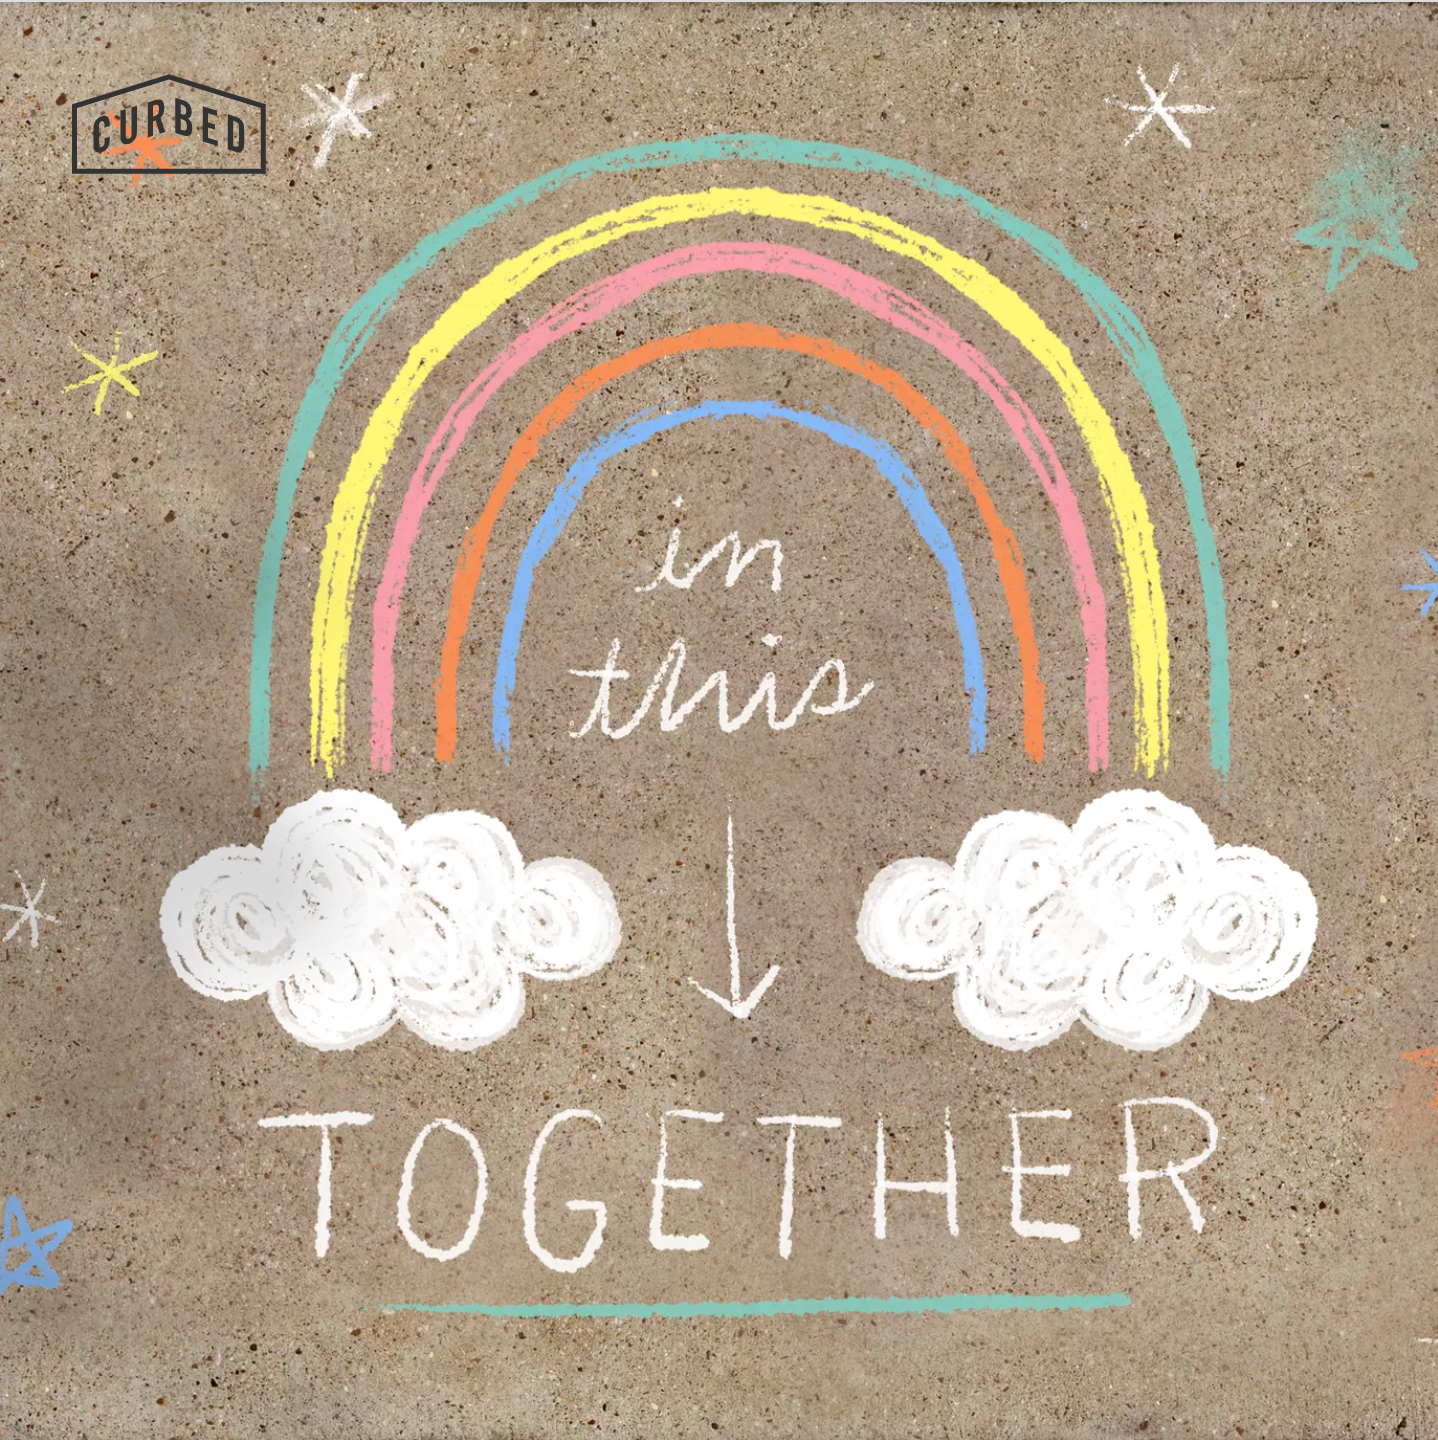 chalk-art-curbed-in-this-together